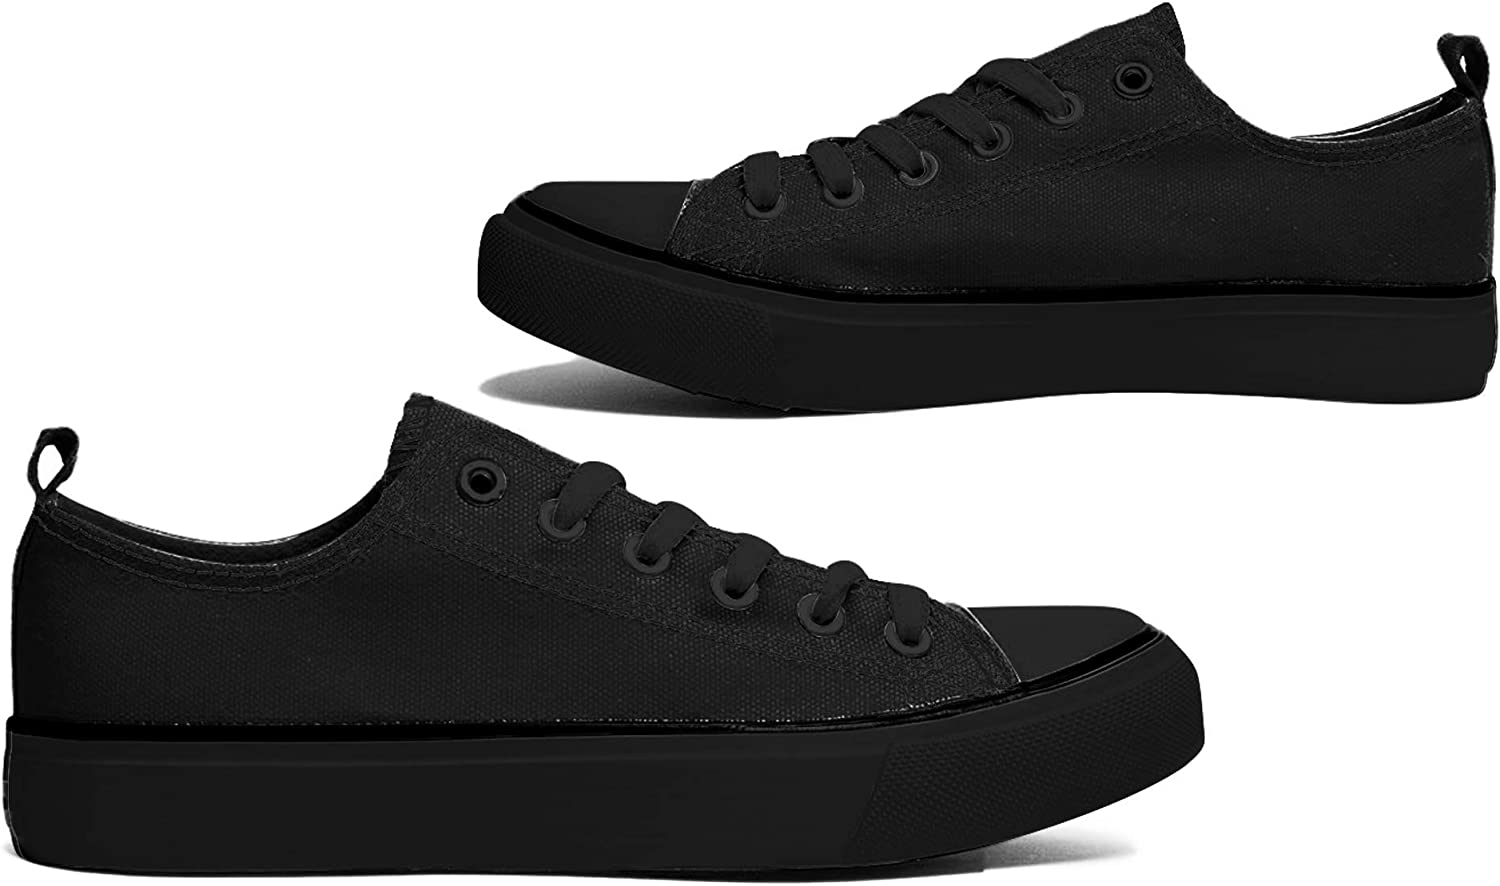 10XSHOES Women's Low Top Classic Canvas Fashion Sneaker Basketball Tennis Athletic shoes